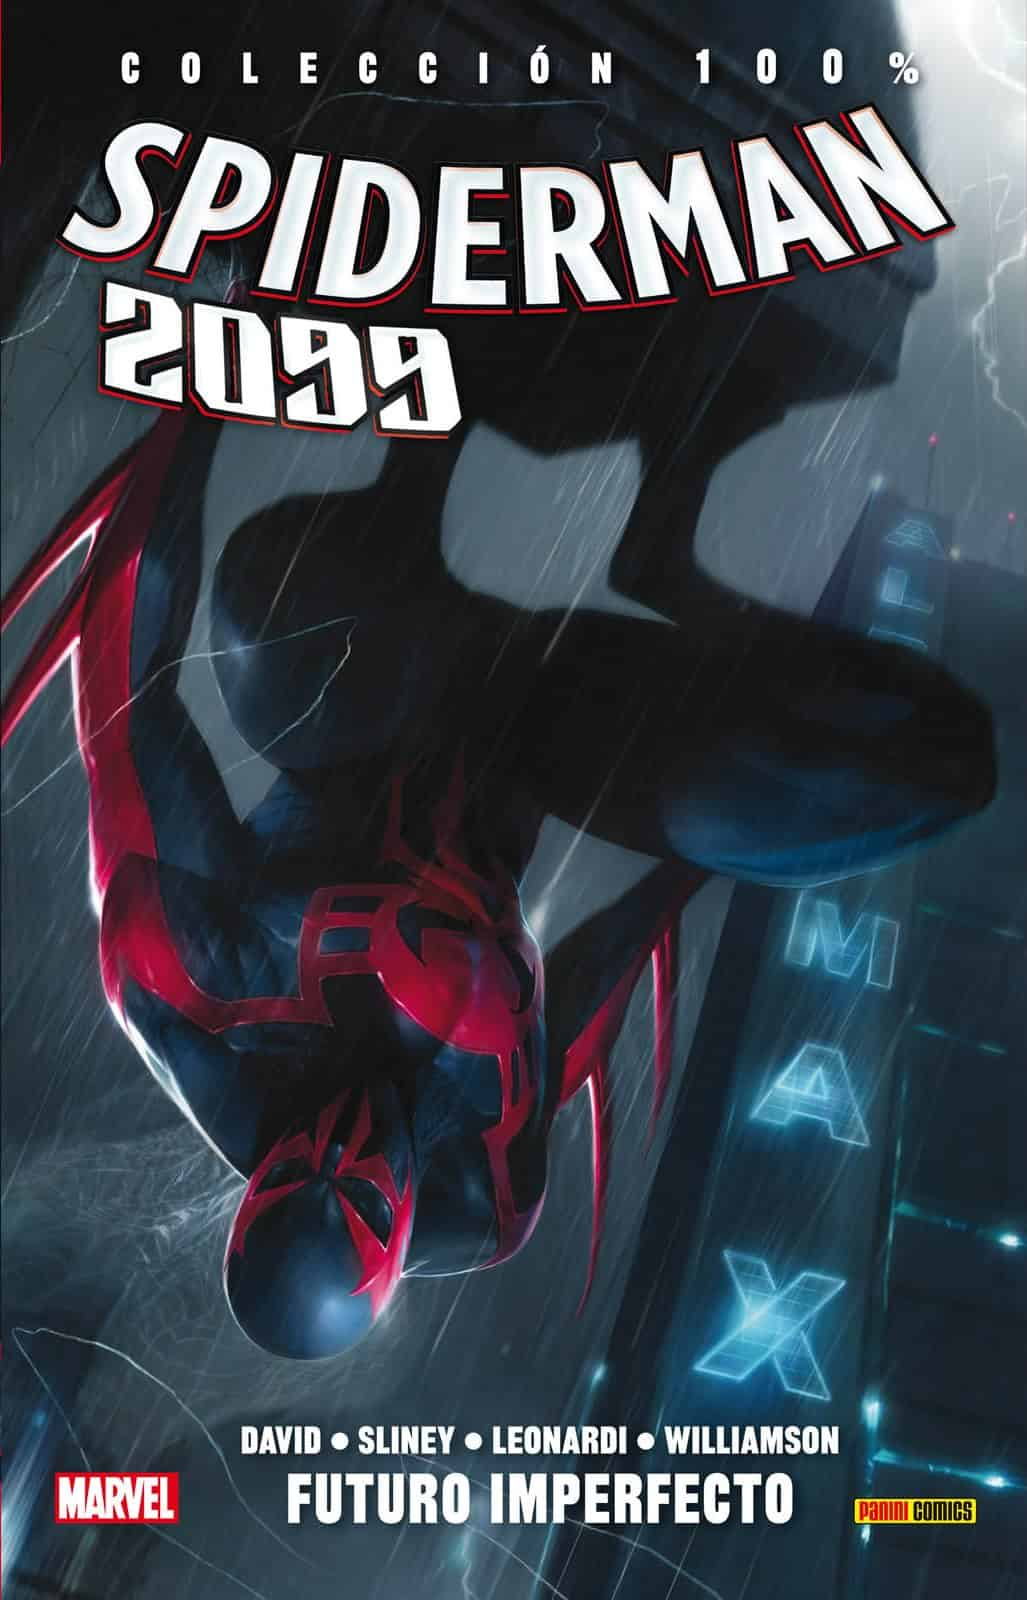 SPIDERMAN 2099 02. FUTURO IMPERFECTO